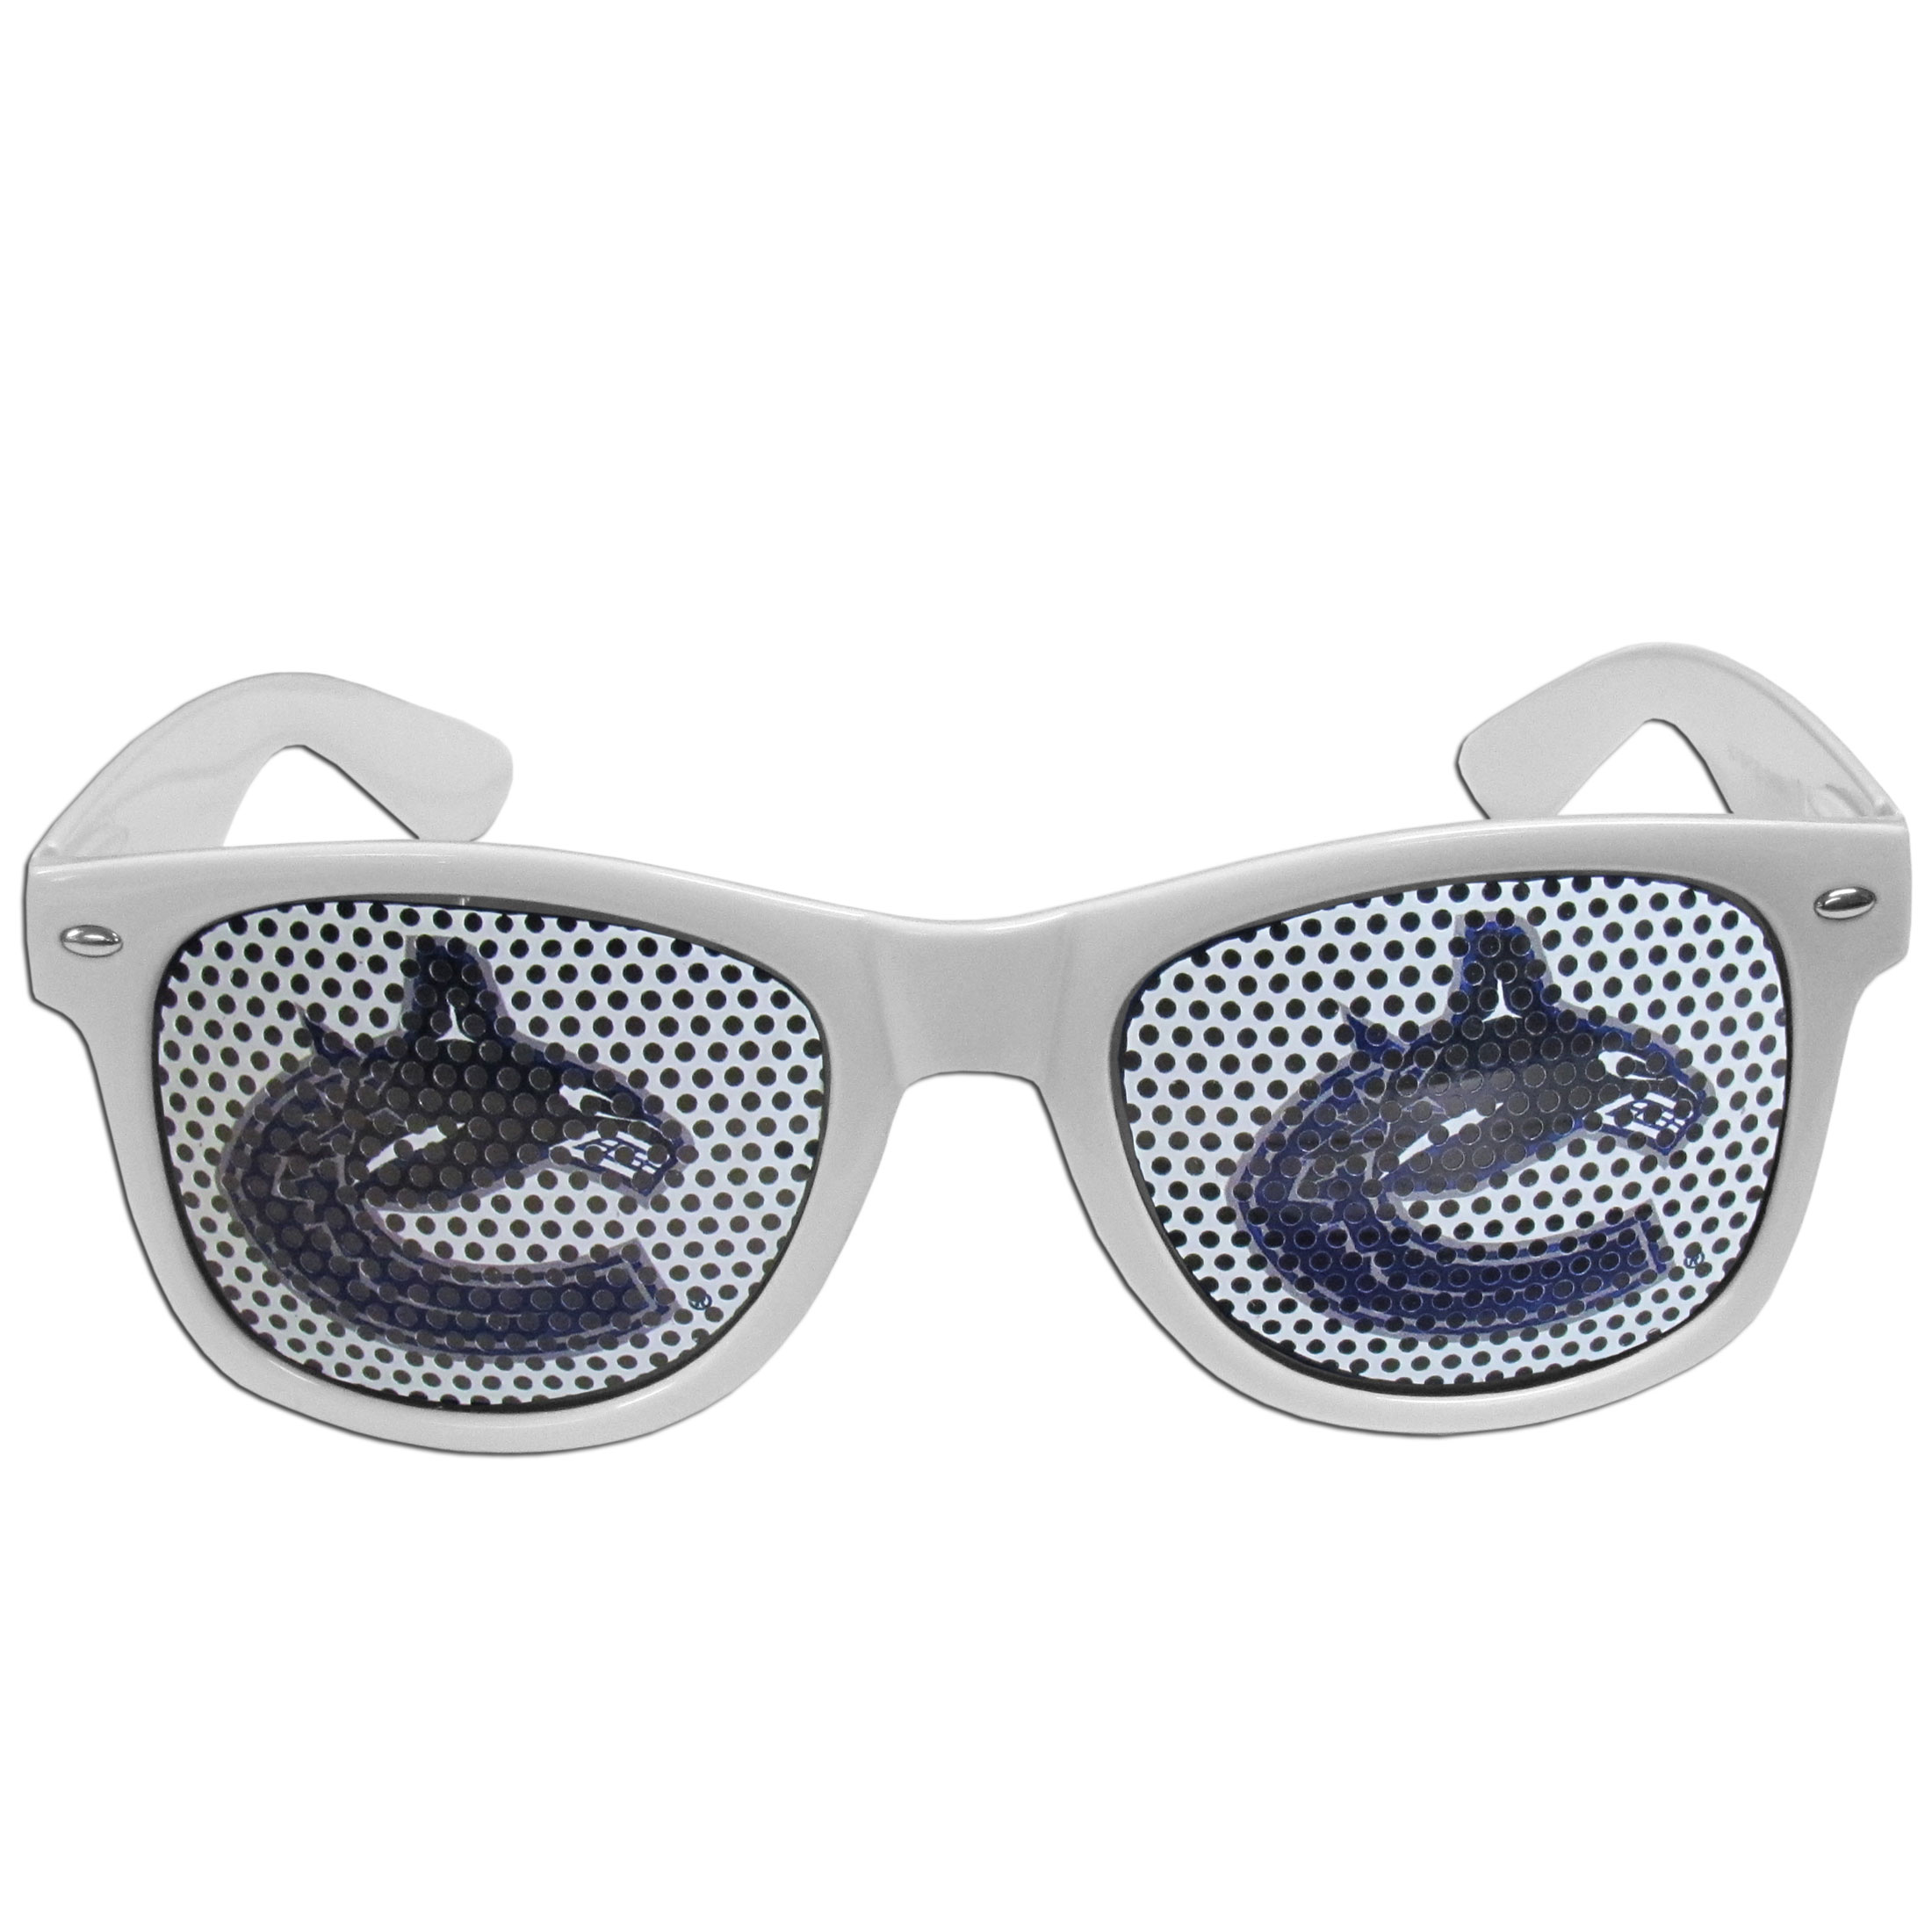 Vancouver Canucks Game Day Shades - Officially licensed Vancouver Canucks game day shades are the perfect accessory for the devoted Vancouver Canucks fan! The Vancouver Canucks game day shades have durable polycarbonate frames with flex hinges for comfort and damage resistance. The lenses feature brightly colored Vancouver Canucks game day shades clings that are perforated for visibility. Thank you for visiting CrazedOutSports